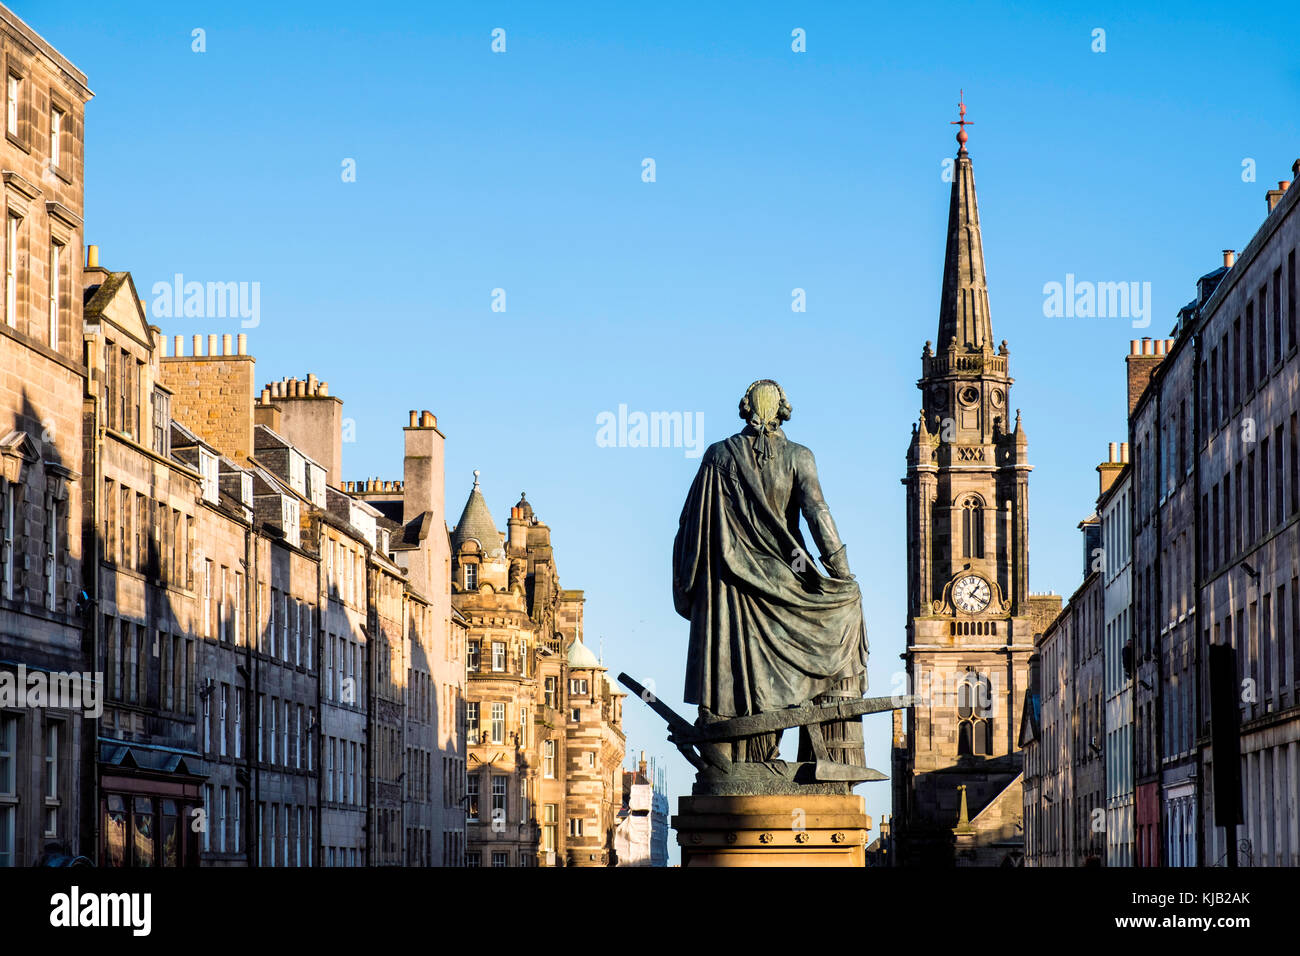 View of statue of Adam Smith on the Royal Mile in Old Town of Edinburgh, Scotland, United Kingdom. - Stock Image